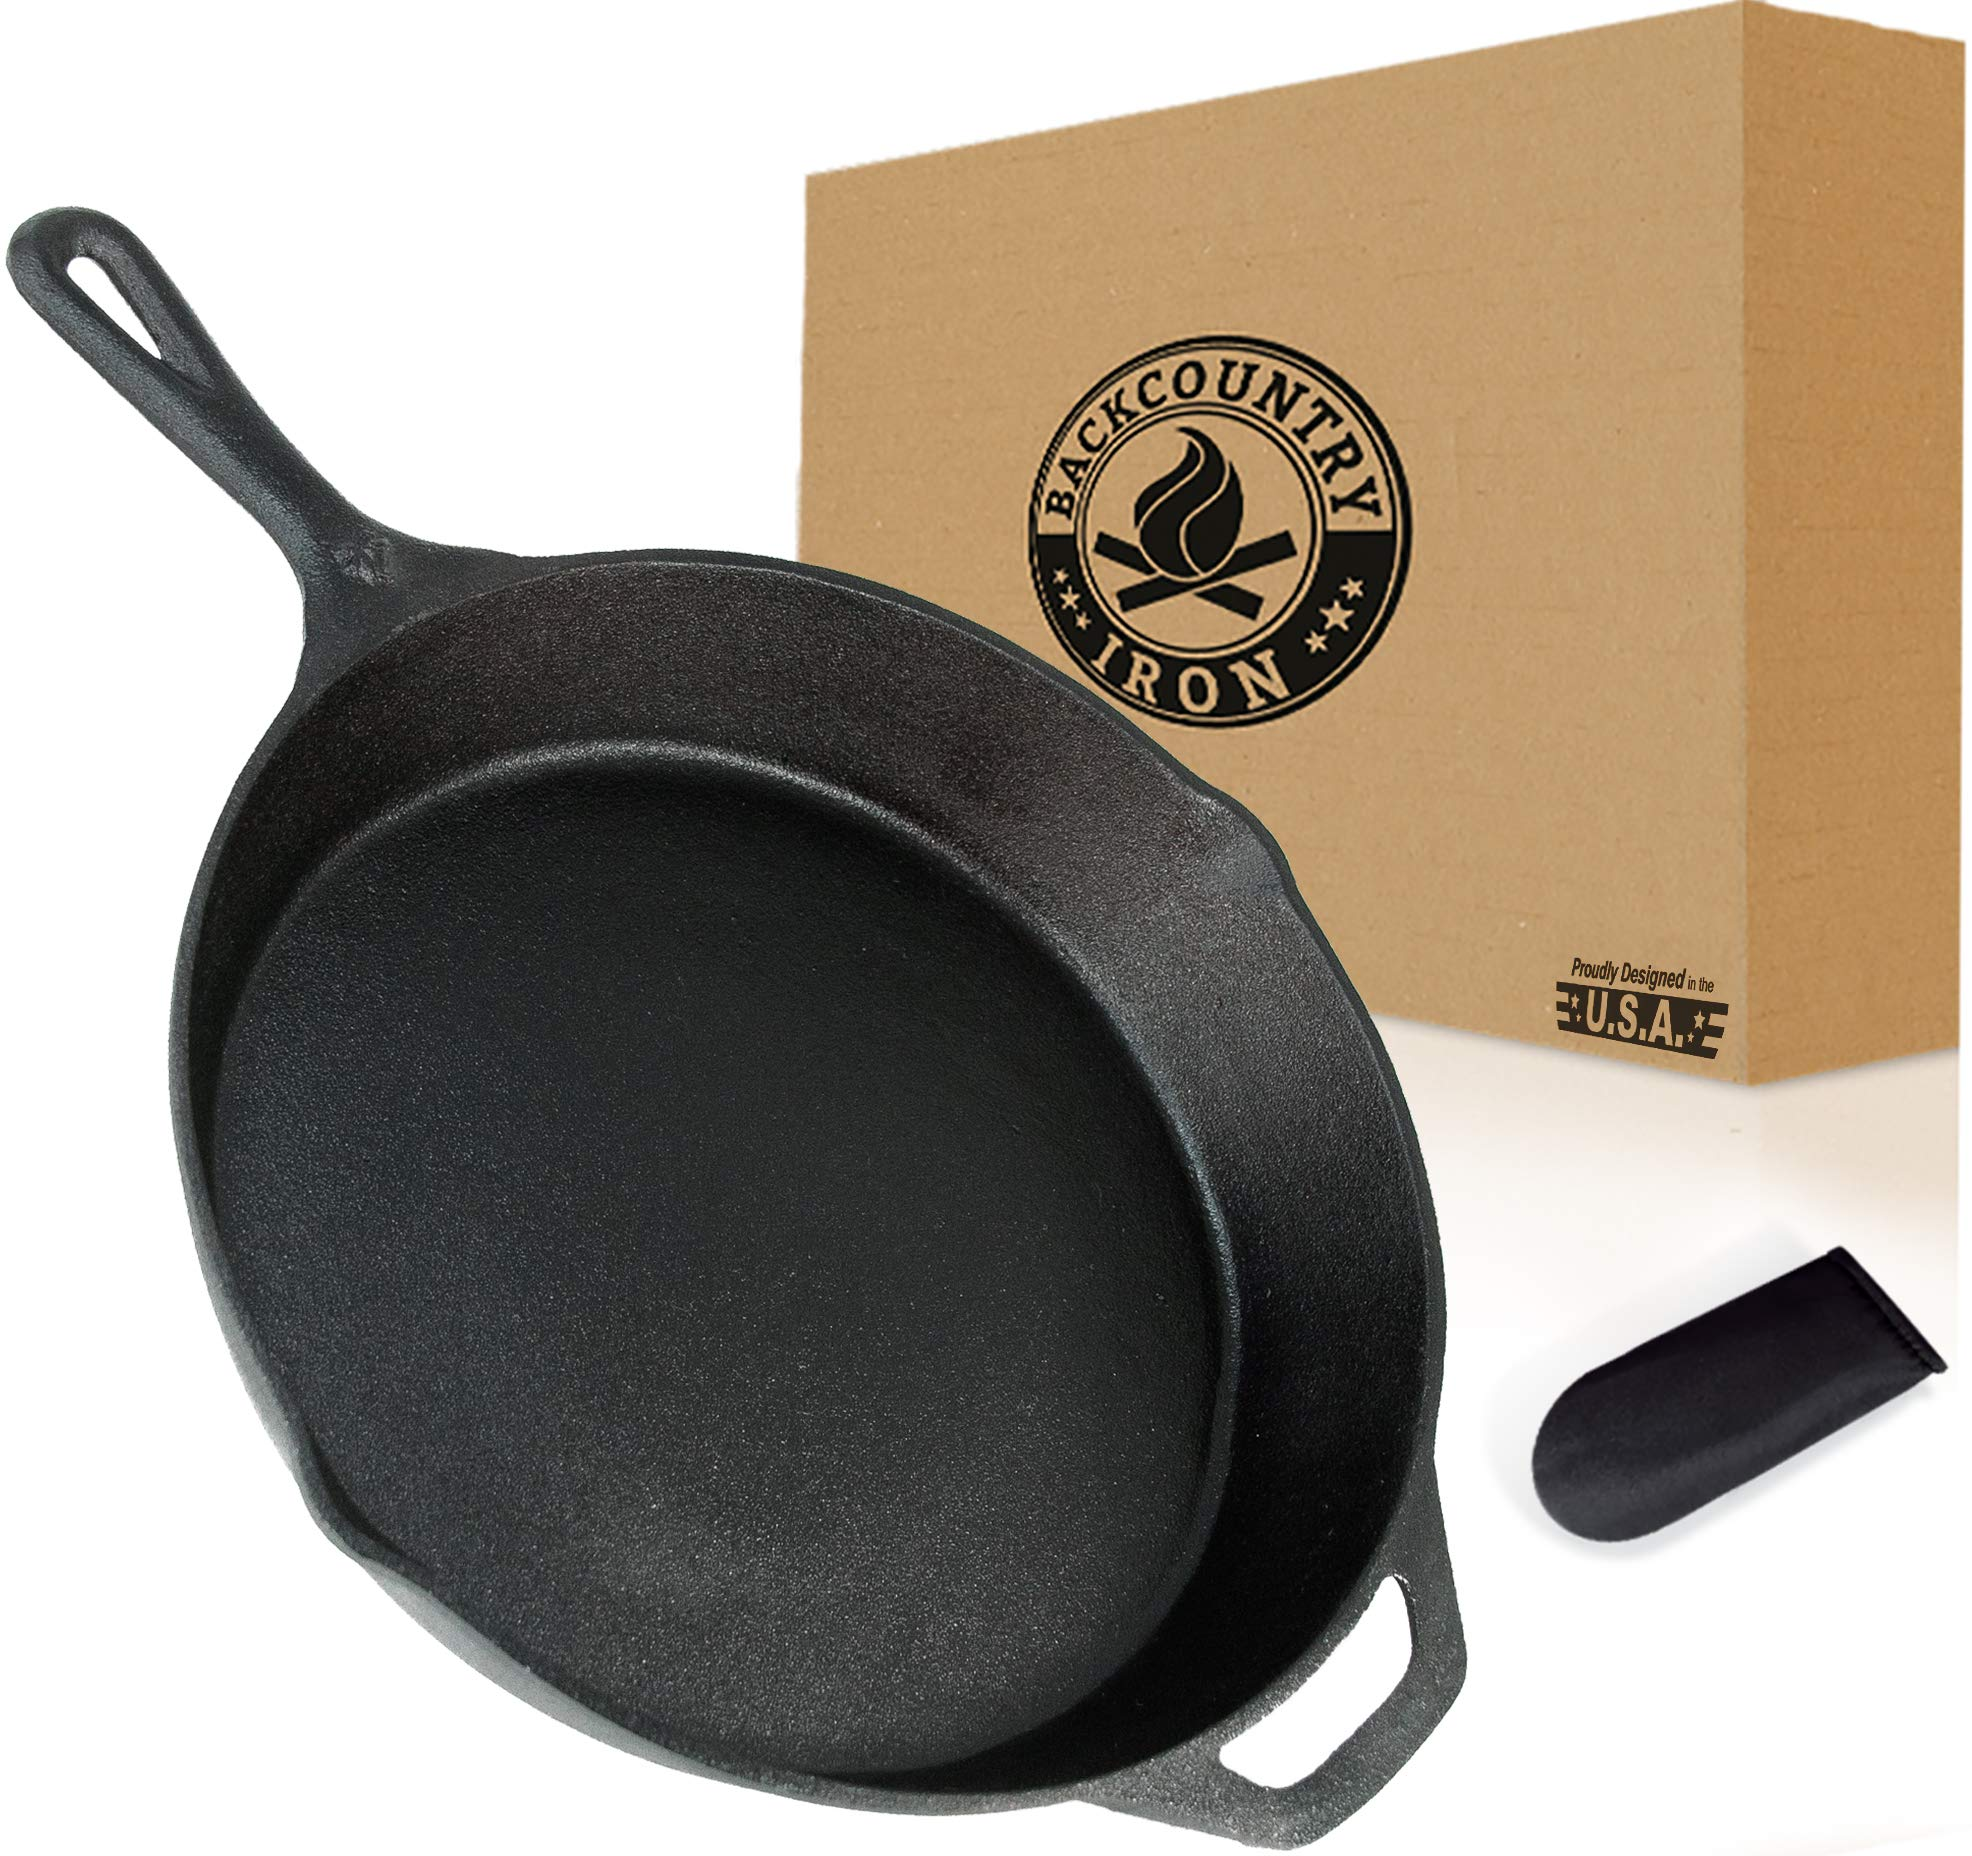 Backcountry Cast Iron Skillet(12 Inch Large Frying Pan + Cloth Handle Mitt, Pre-Seasoned for Non-Stick Like Surface, Cookware Oven / Broiler / Grill Safe, Kitchen Deep Fryer, Restaurant Chef Quality) by Backcountry Iron